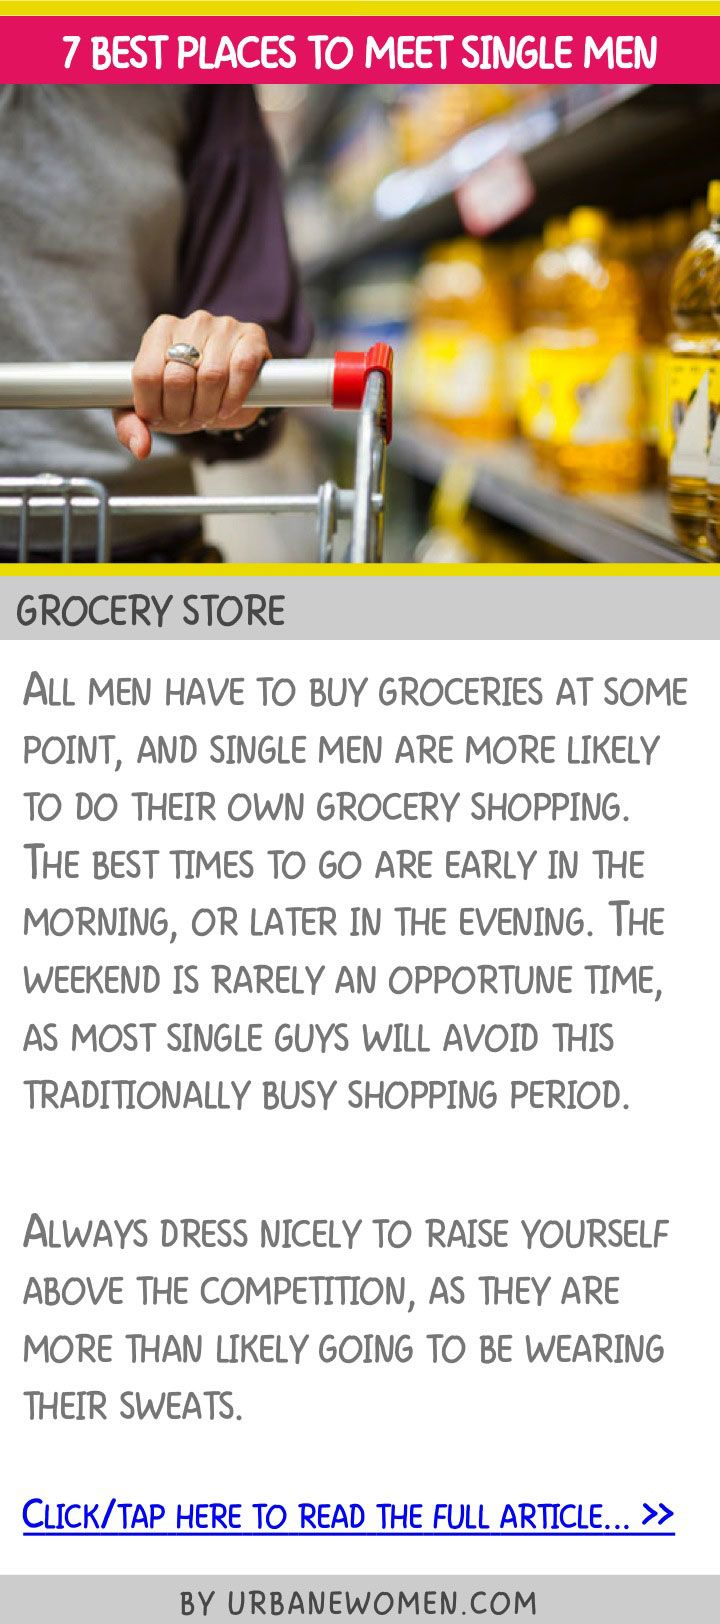 7 best places to meet single men - Grocery store